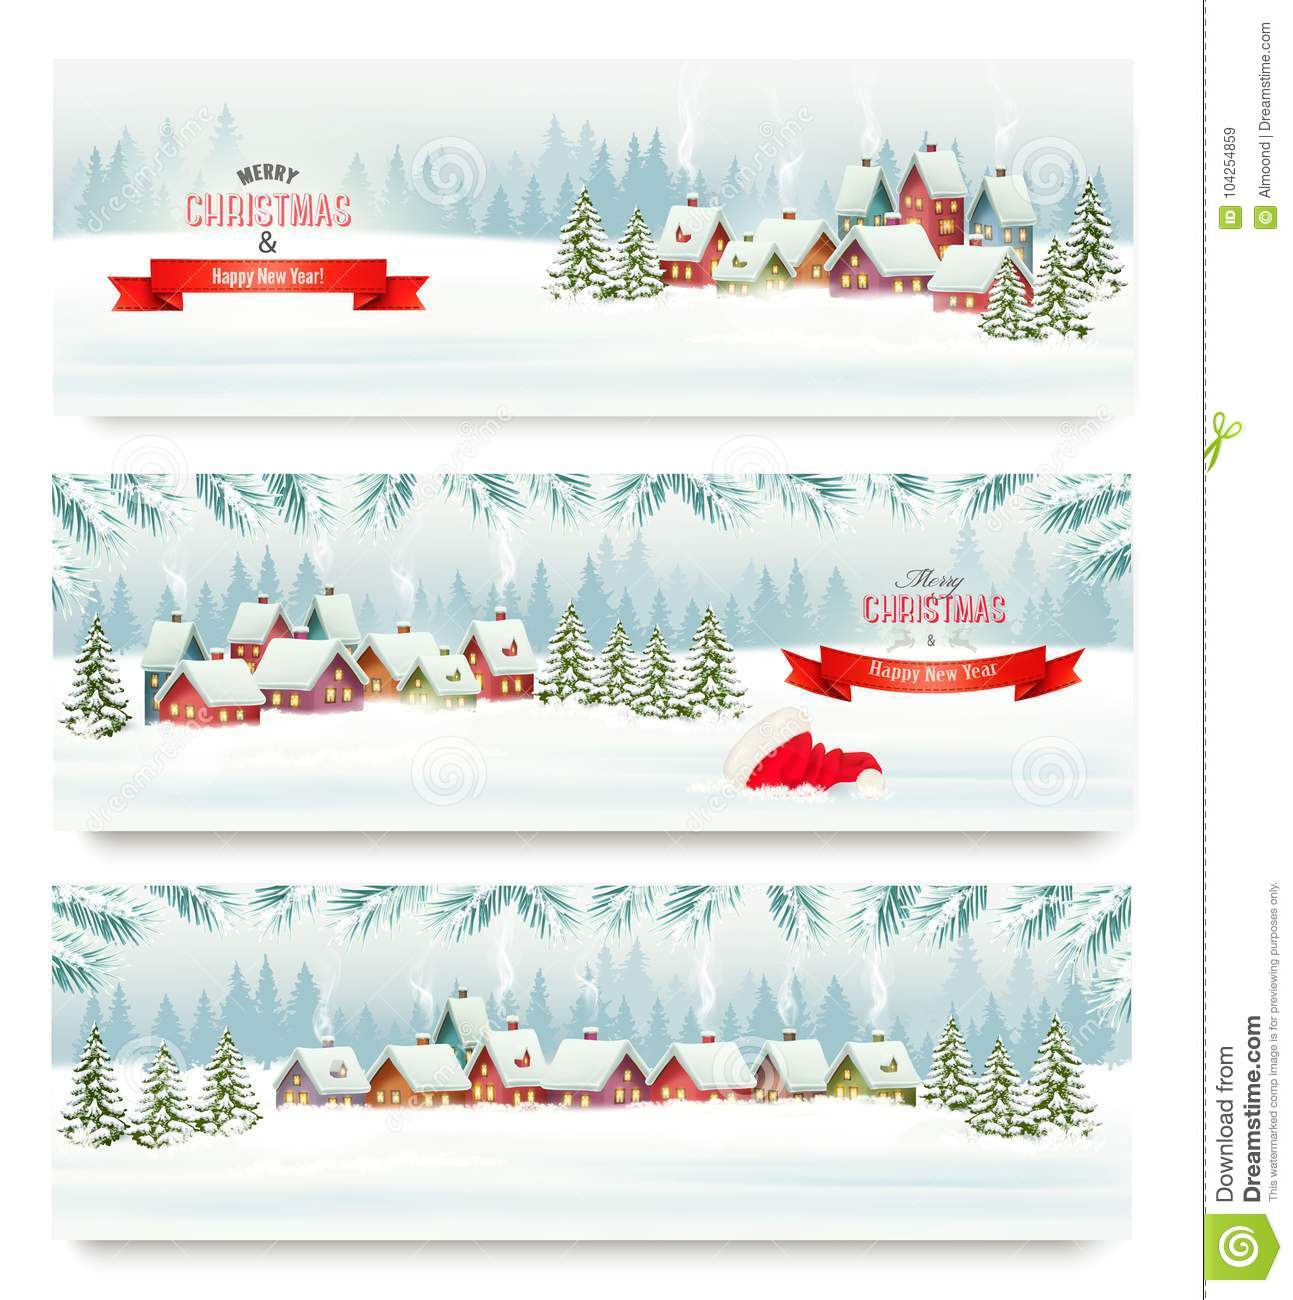 Three Holiday Christmas banners with a winter village